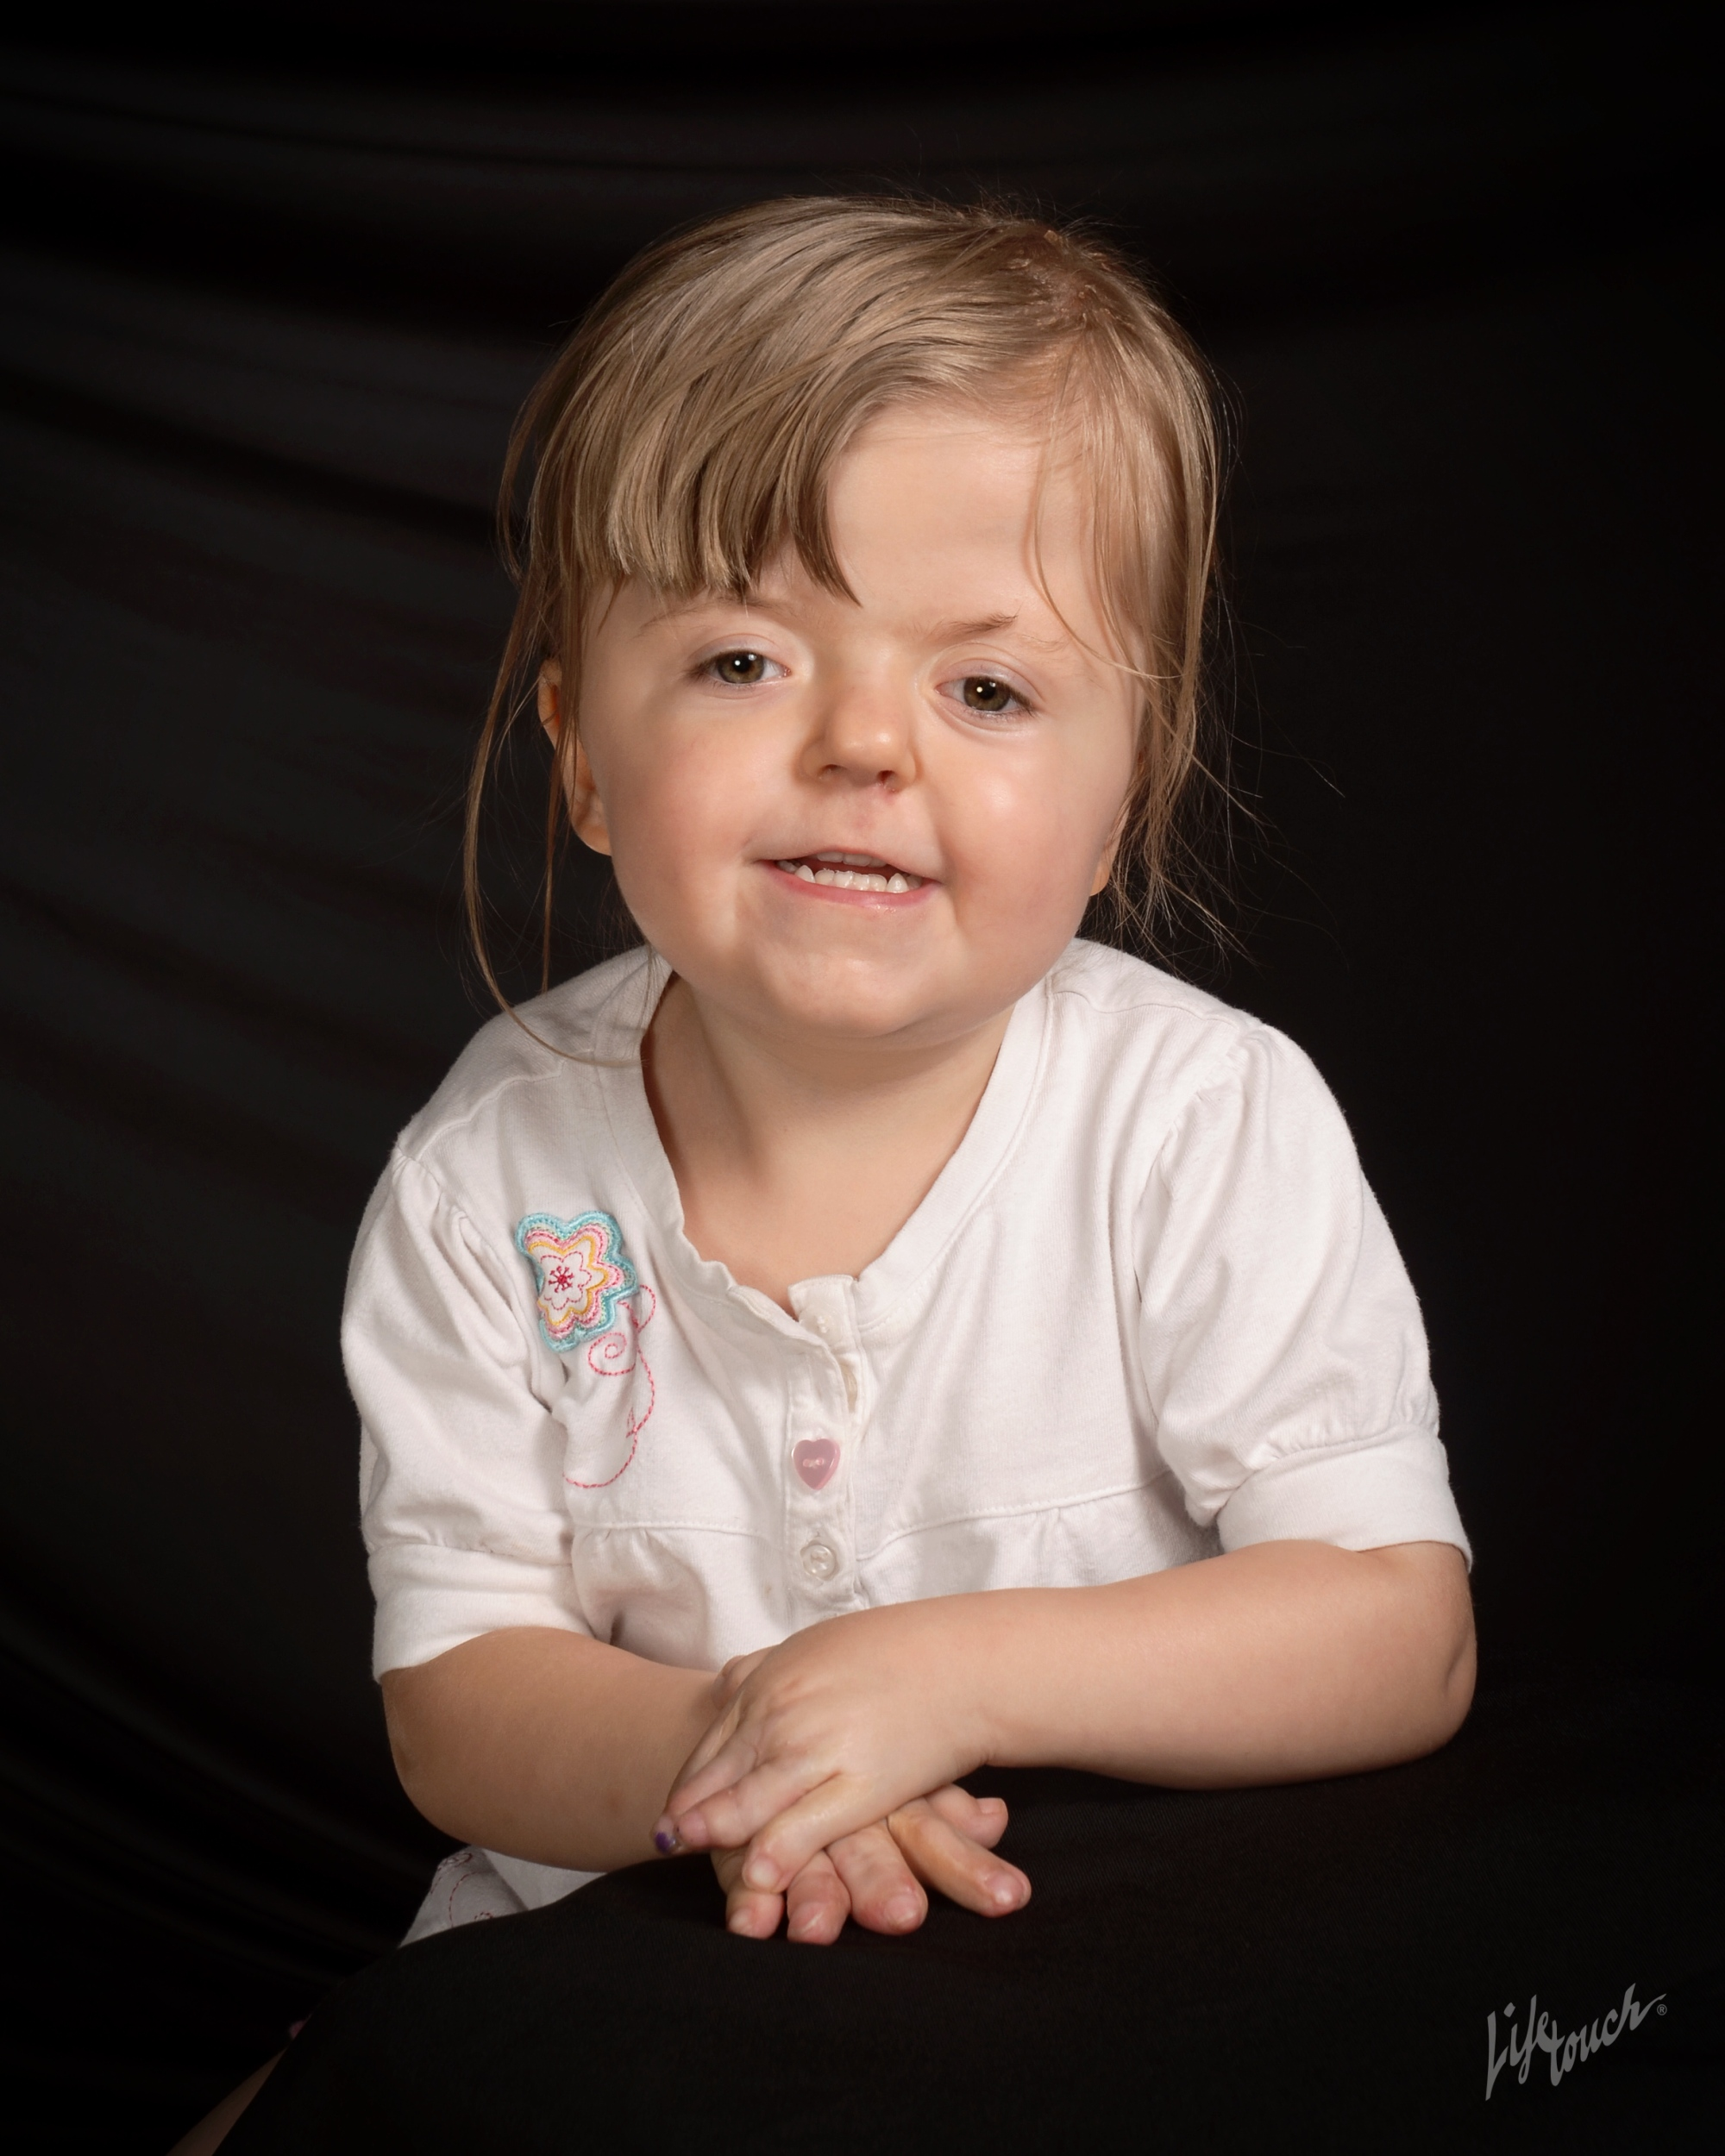 little girl with apert syndrome